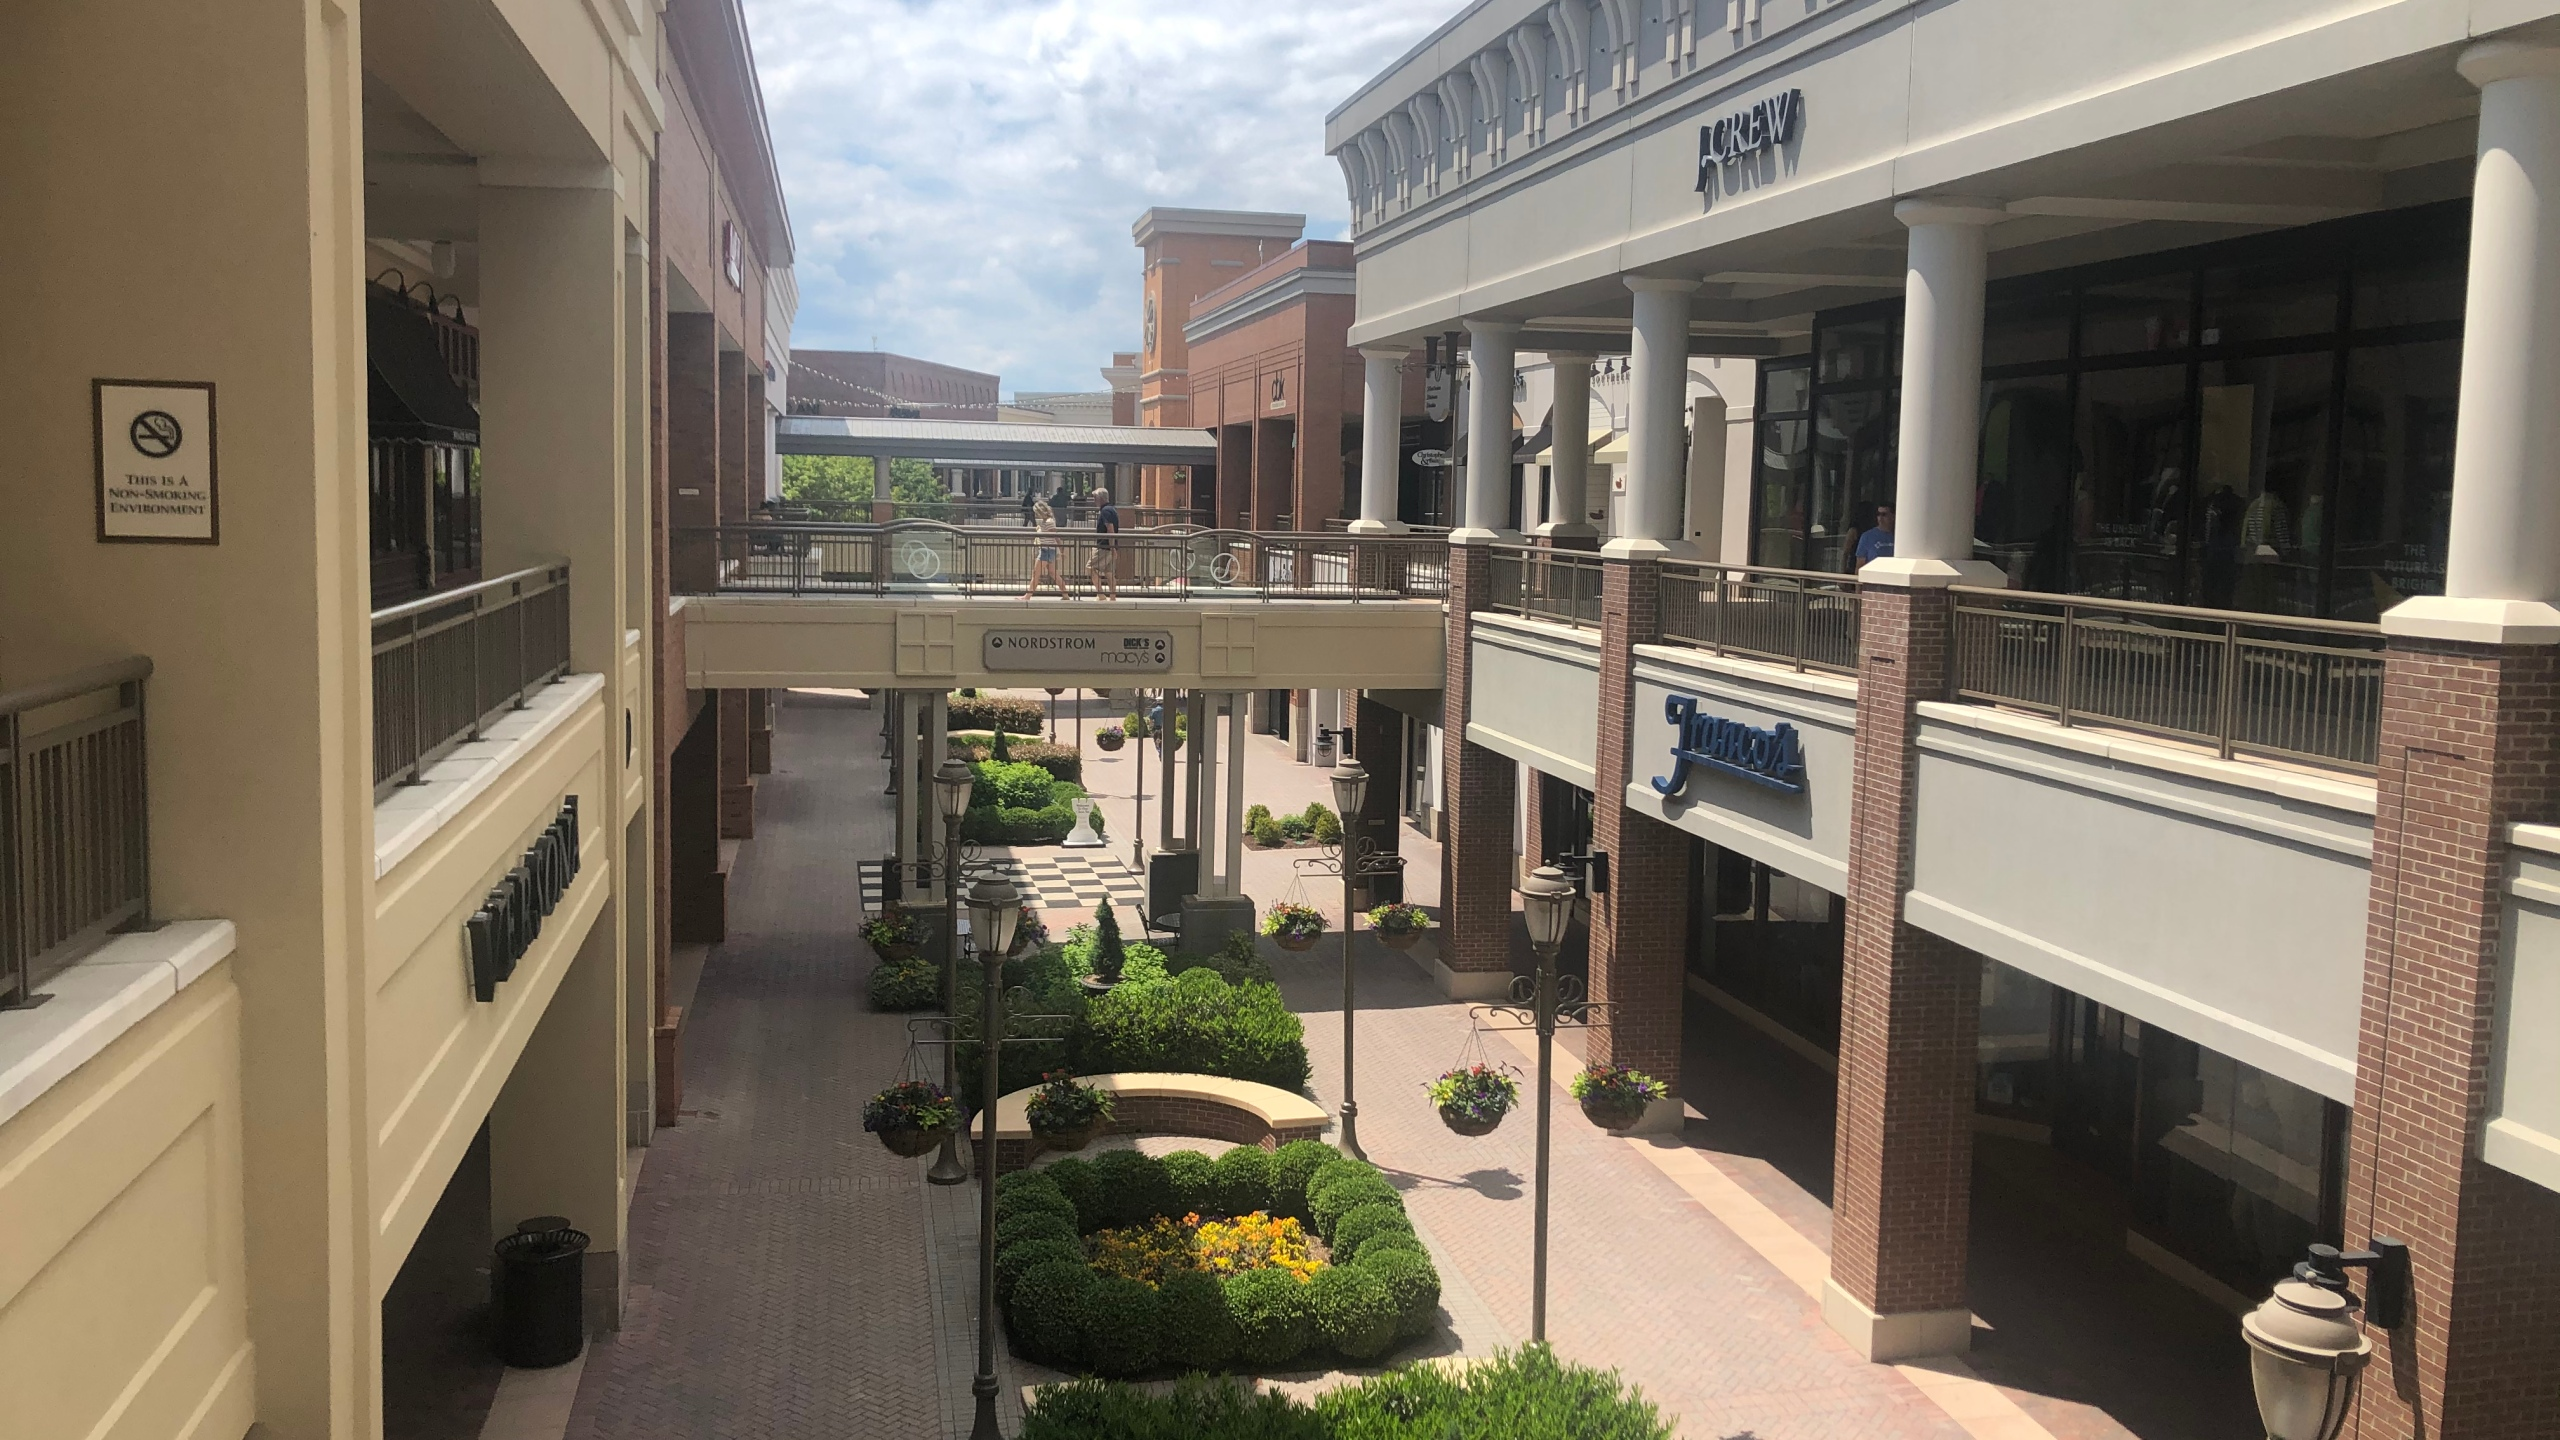 VIRGINIA REOPENS – Short Pump Town Center in Henrico County